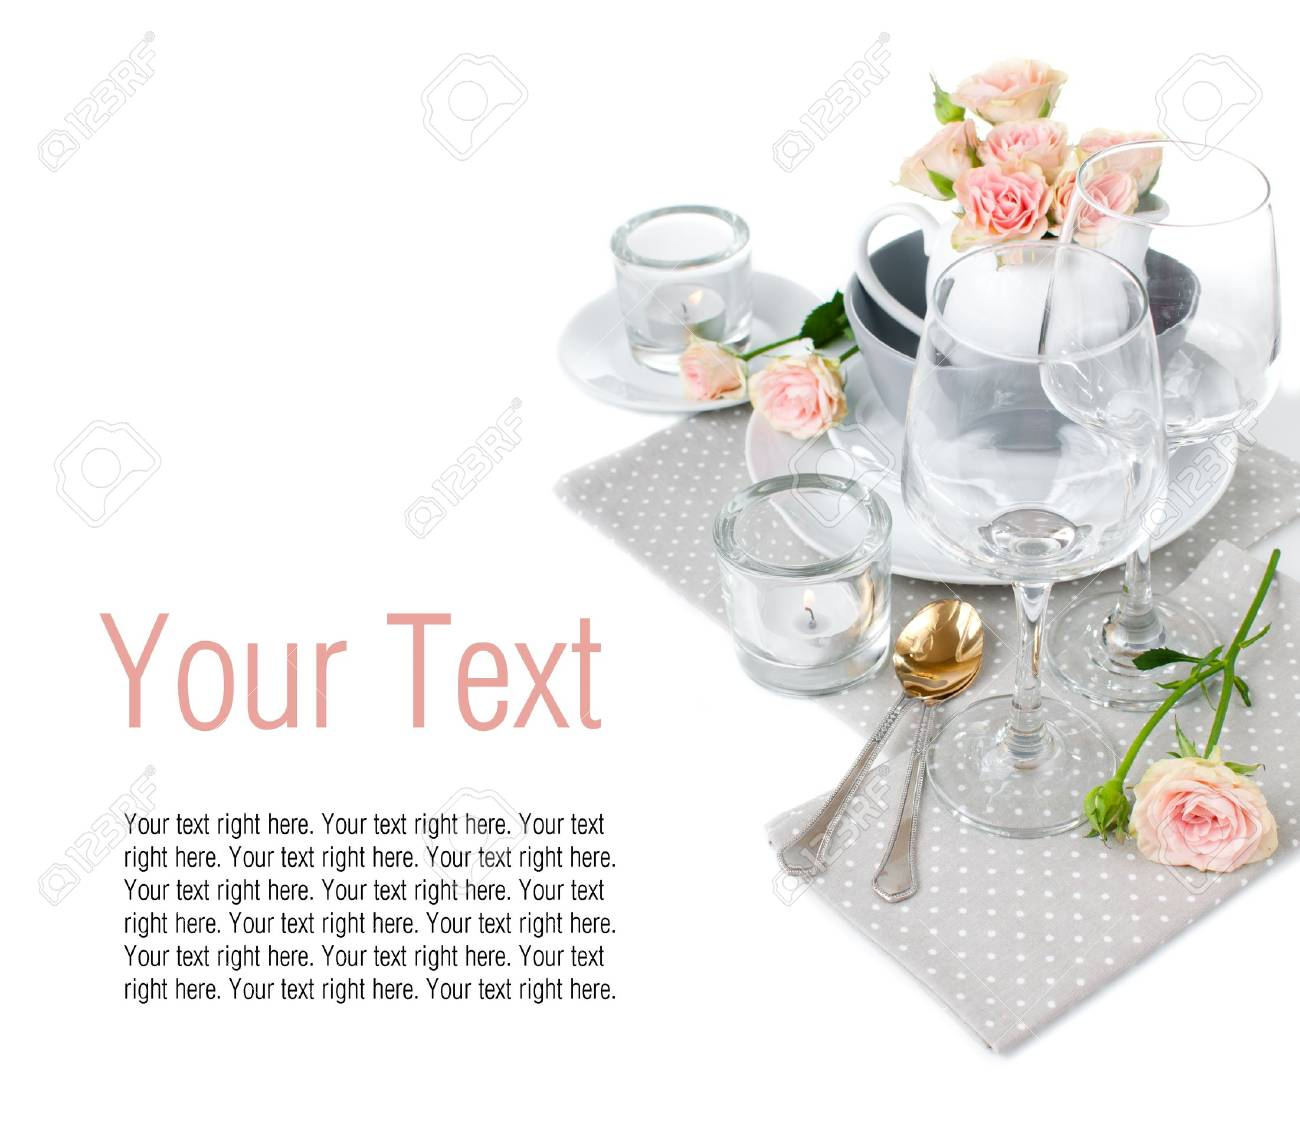 Festive Table Setting Template With Roses And Napkins On A White